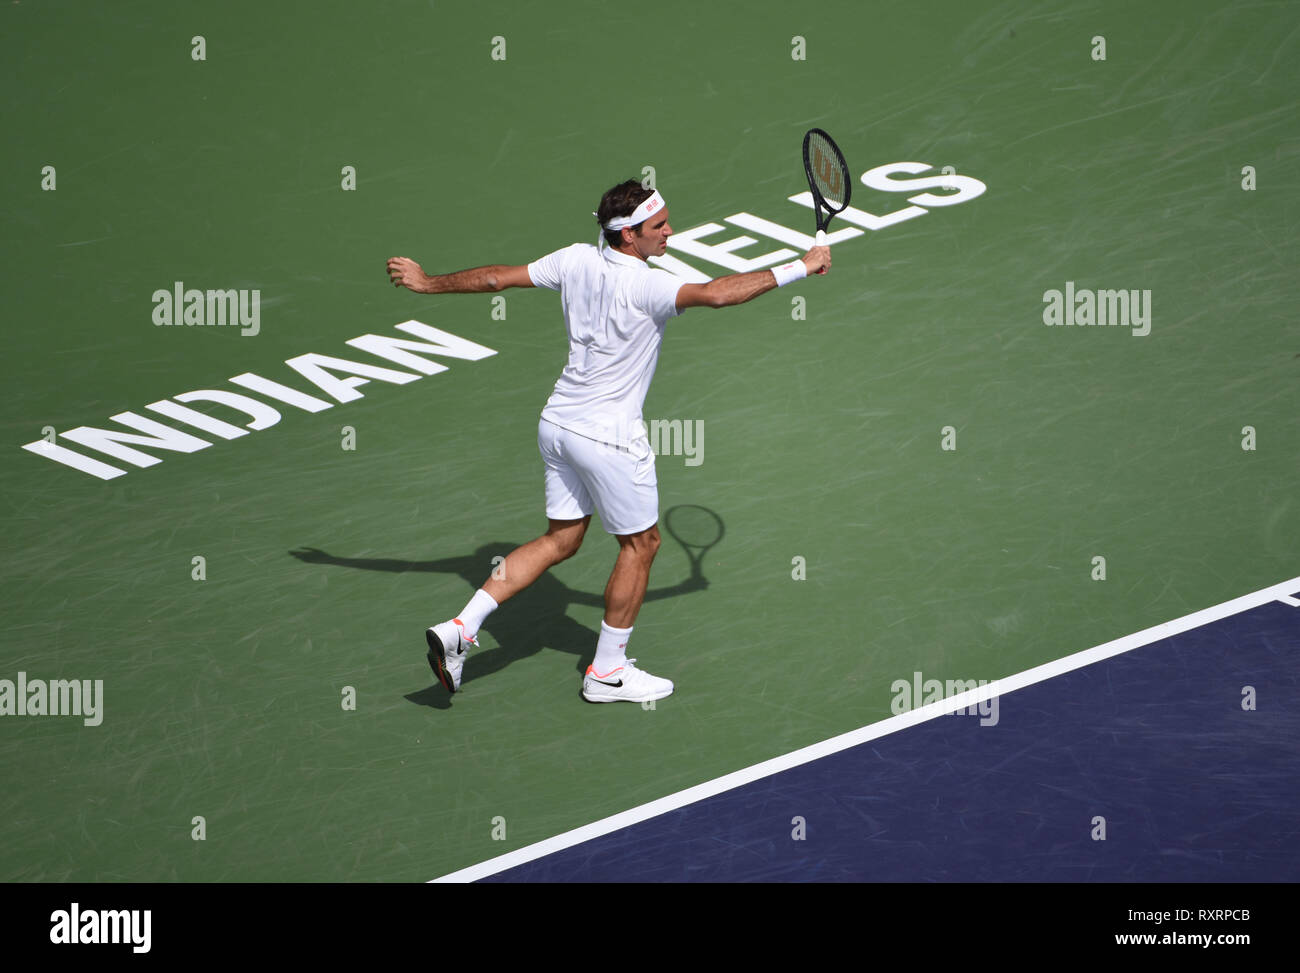 Indian Wells, California, USA. 10 March, 2019: Roger Federer in action against Peter Gojowczyk during the BNP Paribas Open at Indian Wells Tennis Garden in Indian Wells, California John Green/CSM Credit: Cal Sport Media/Alamy Live News - Stock Image